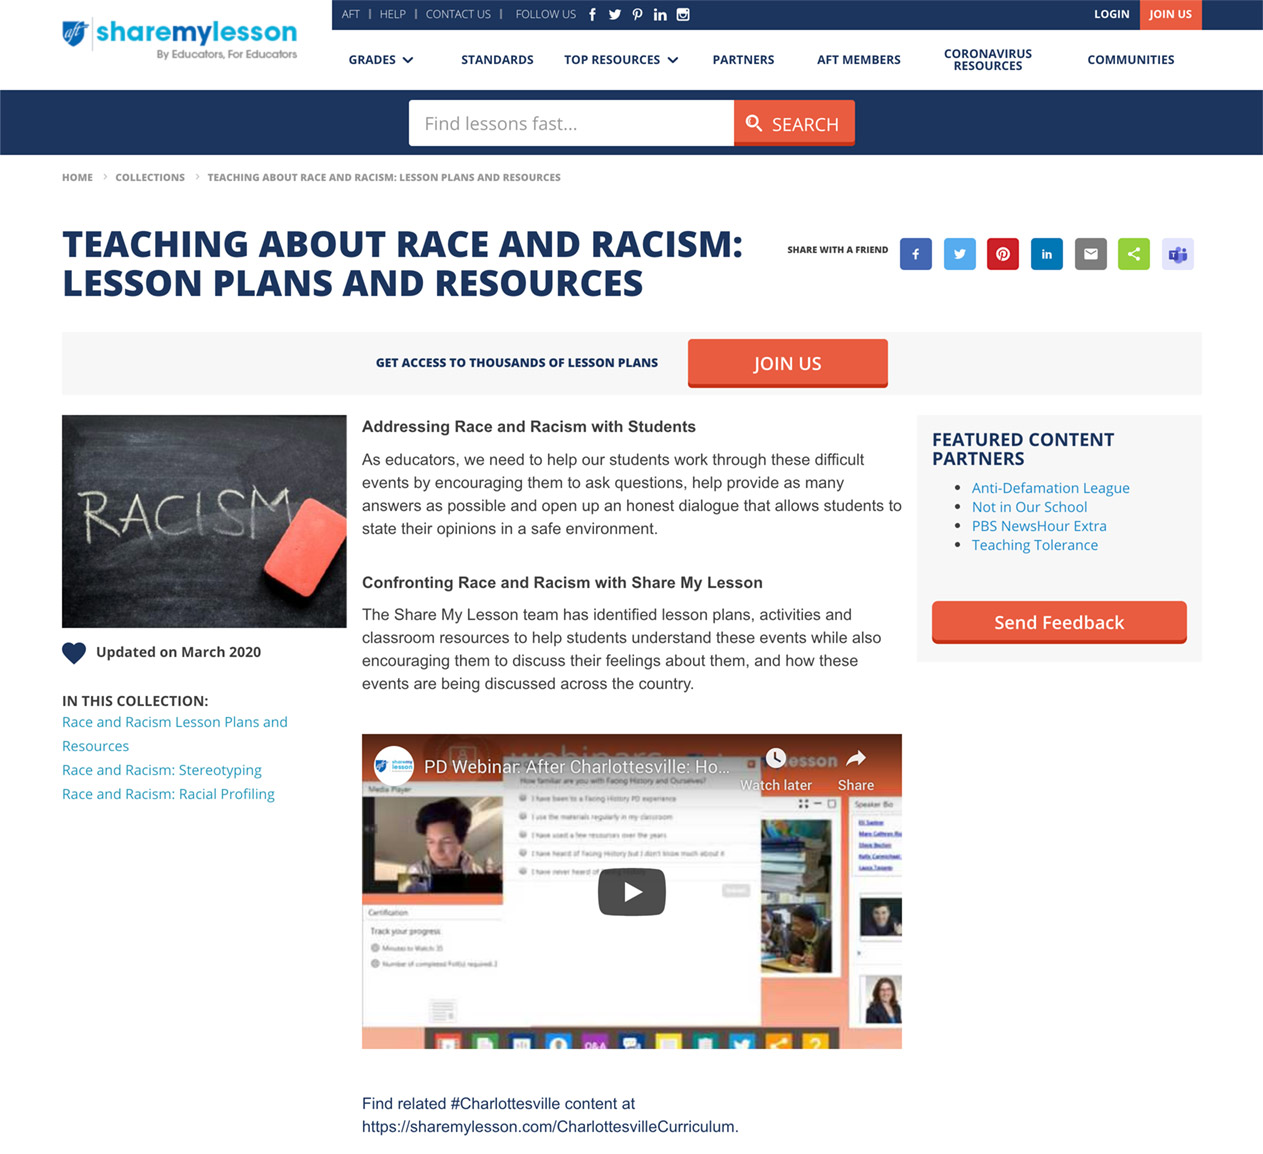 Teaching About Race and Racism: Lesson Plans and Resources